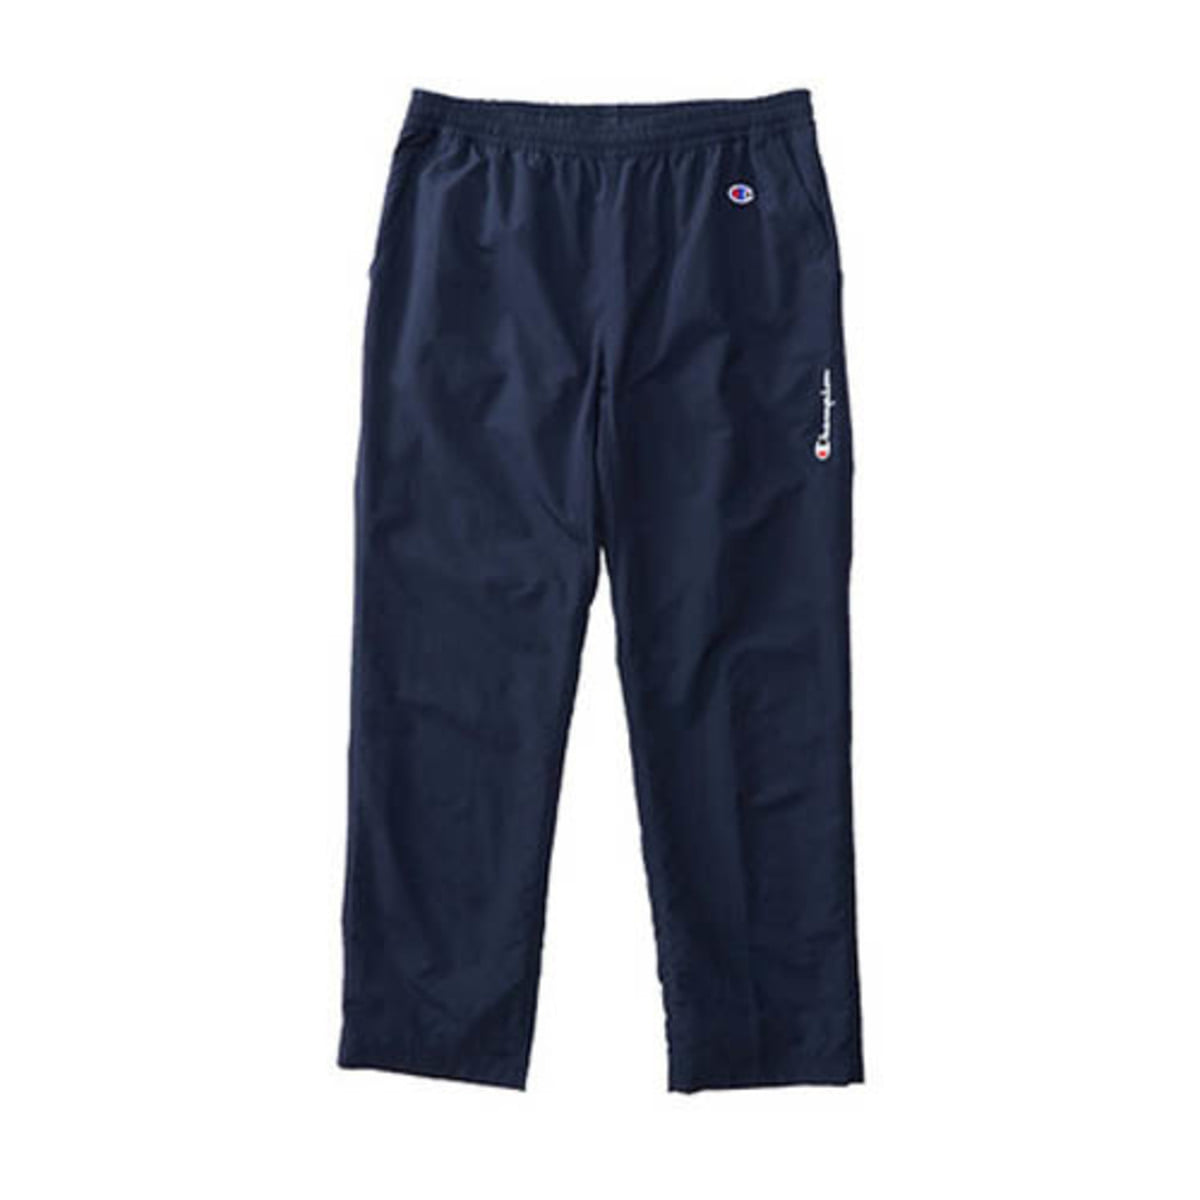 [CHAMPION] ACTION STYLE LONG PANTS 'NAVY' (C3-M208)